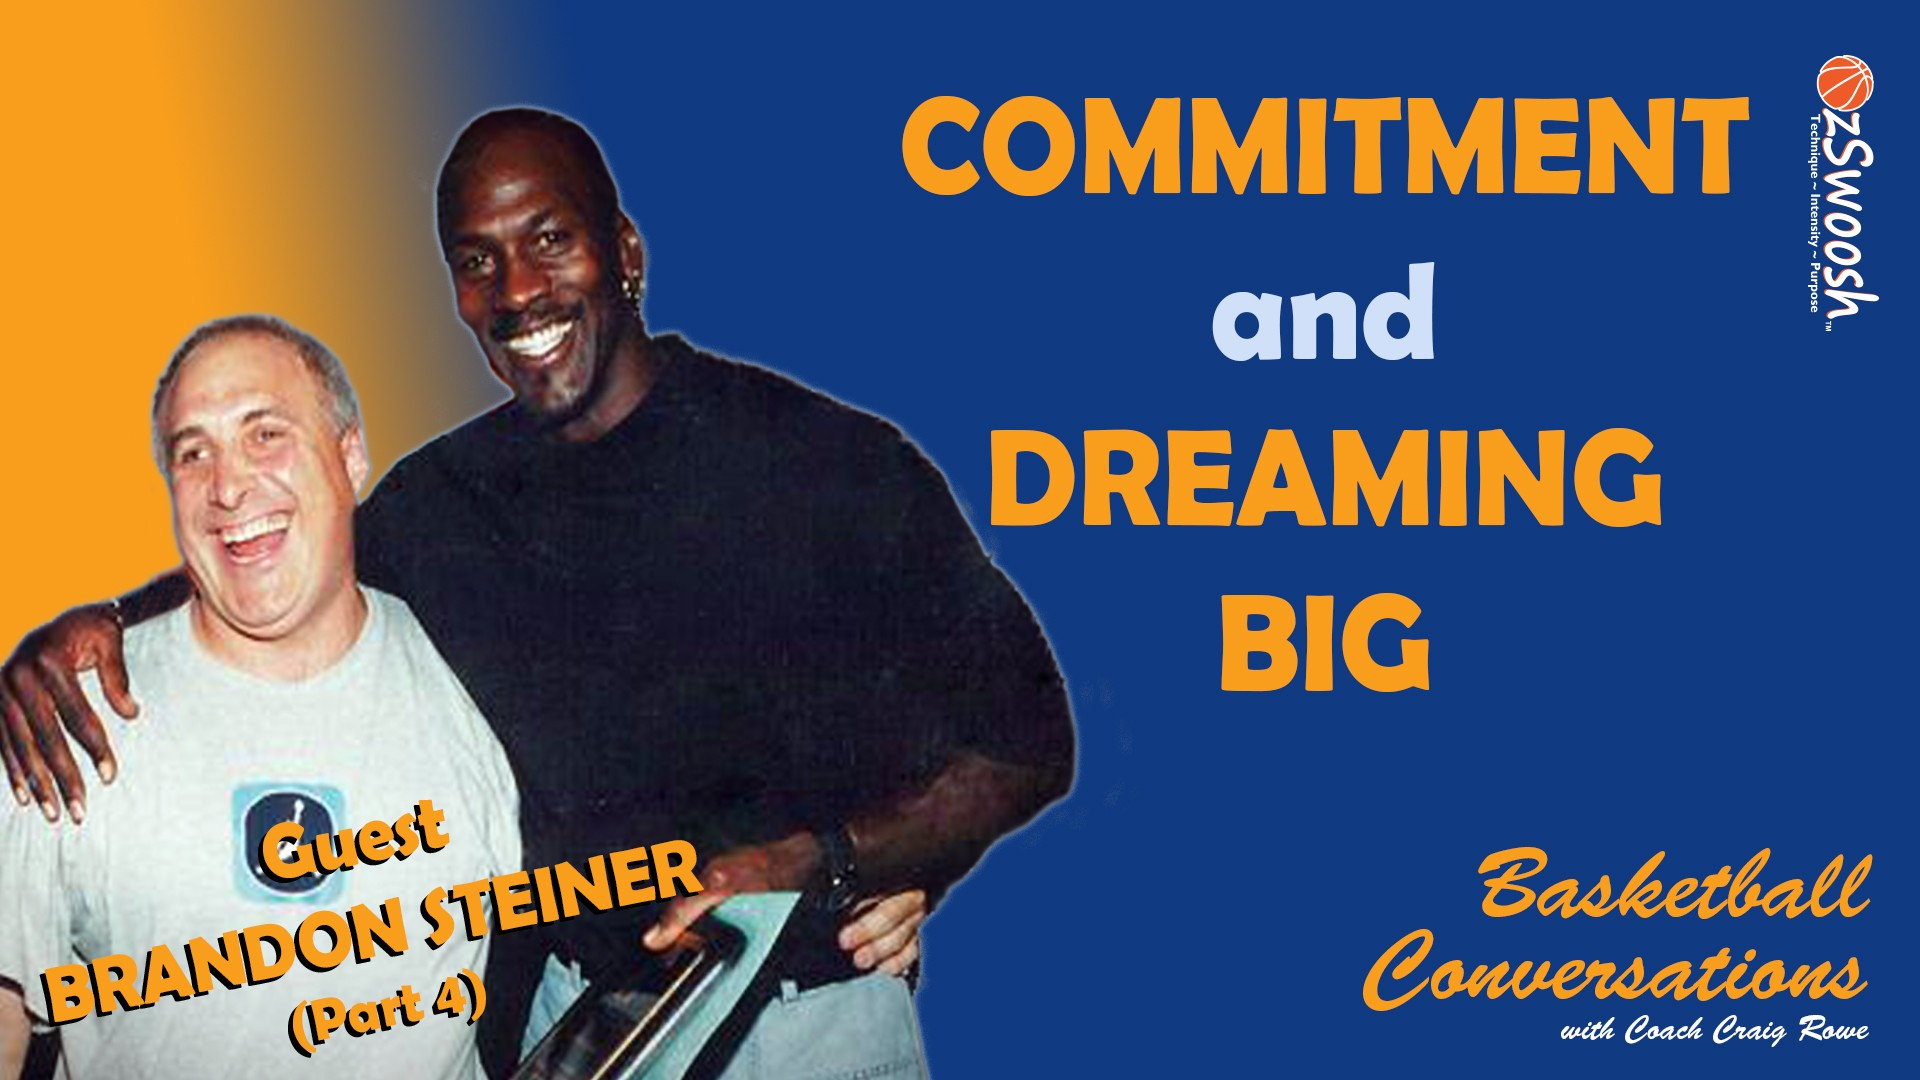 Commitment and Dreaming Big - Brandon Steiner